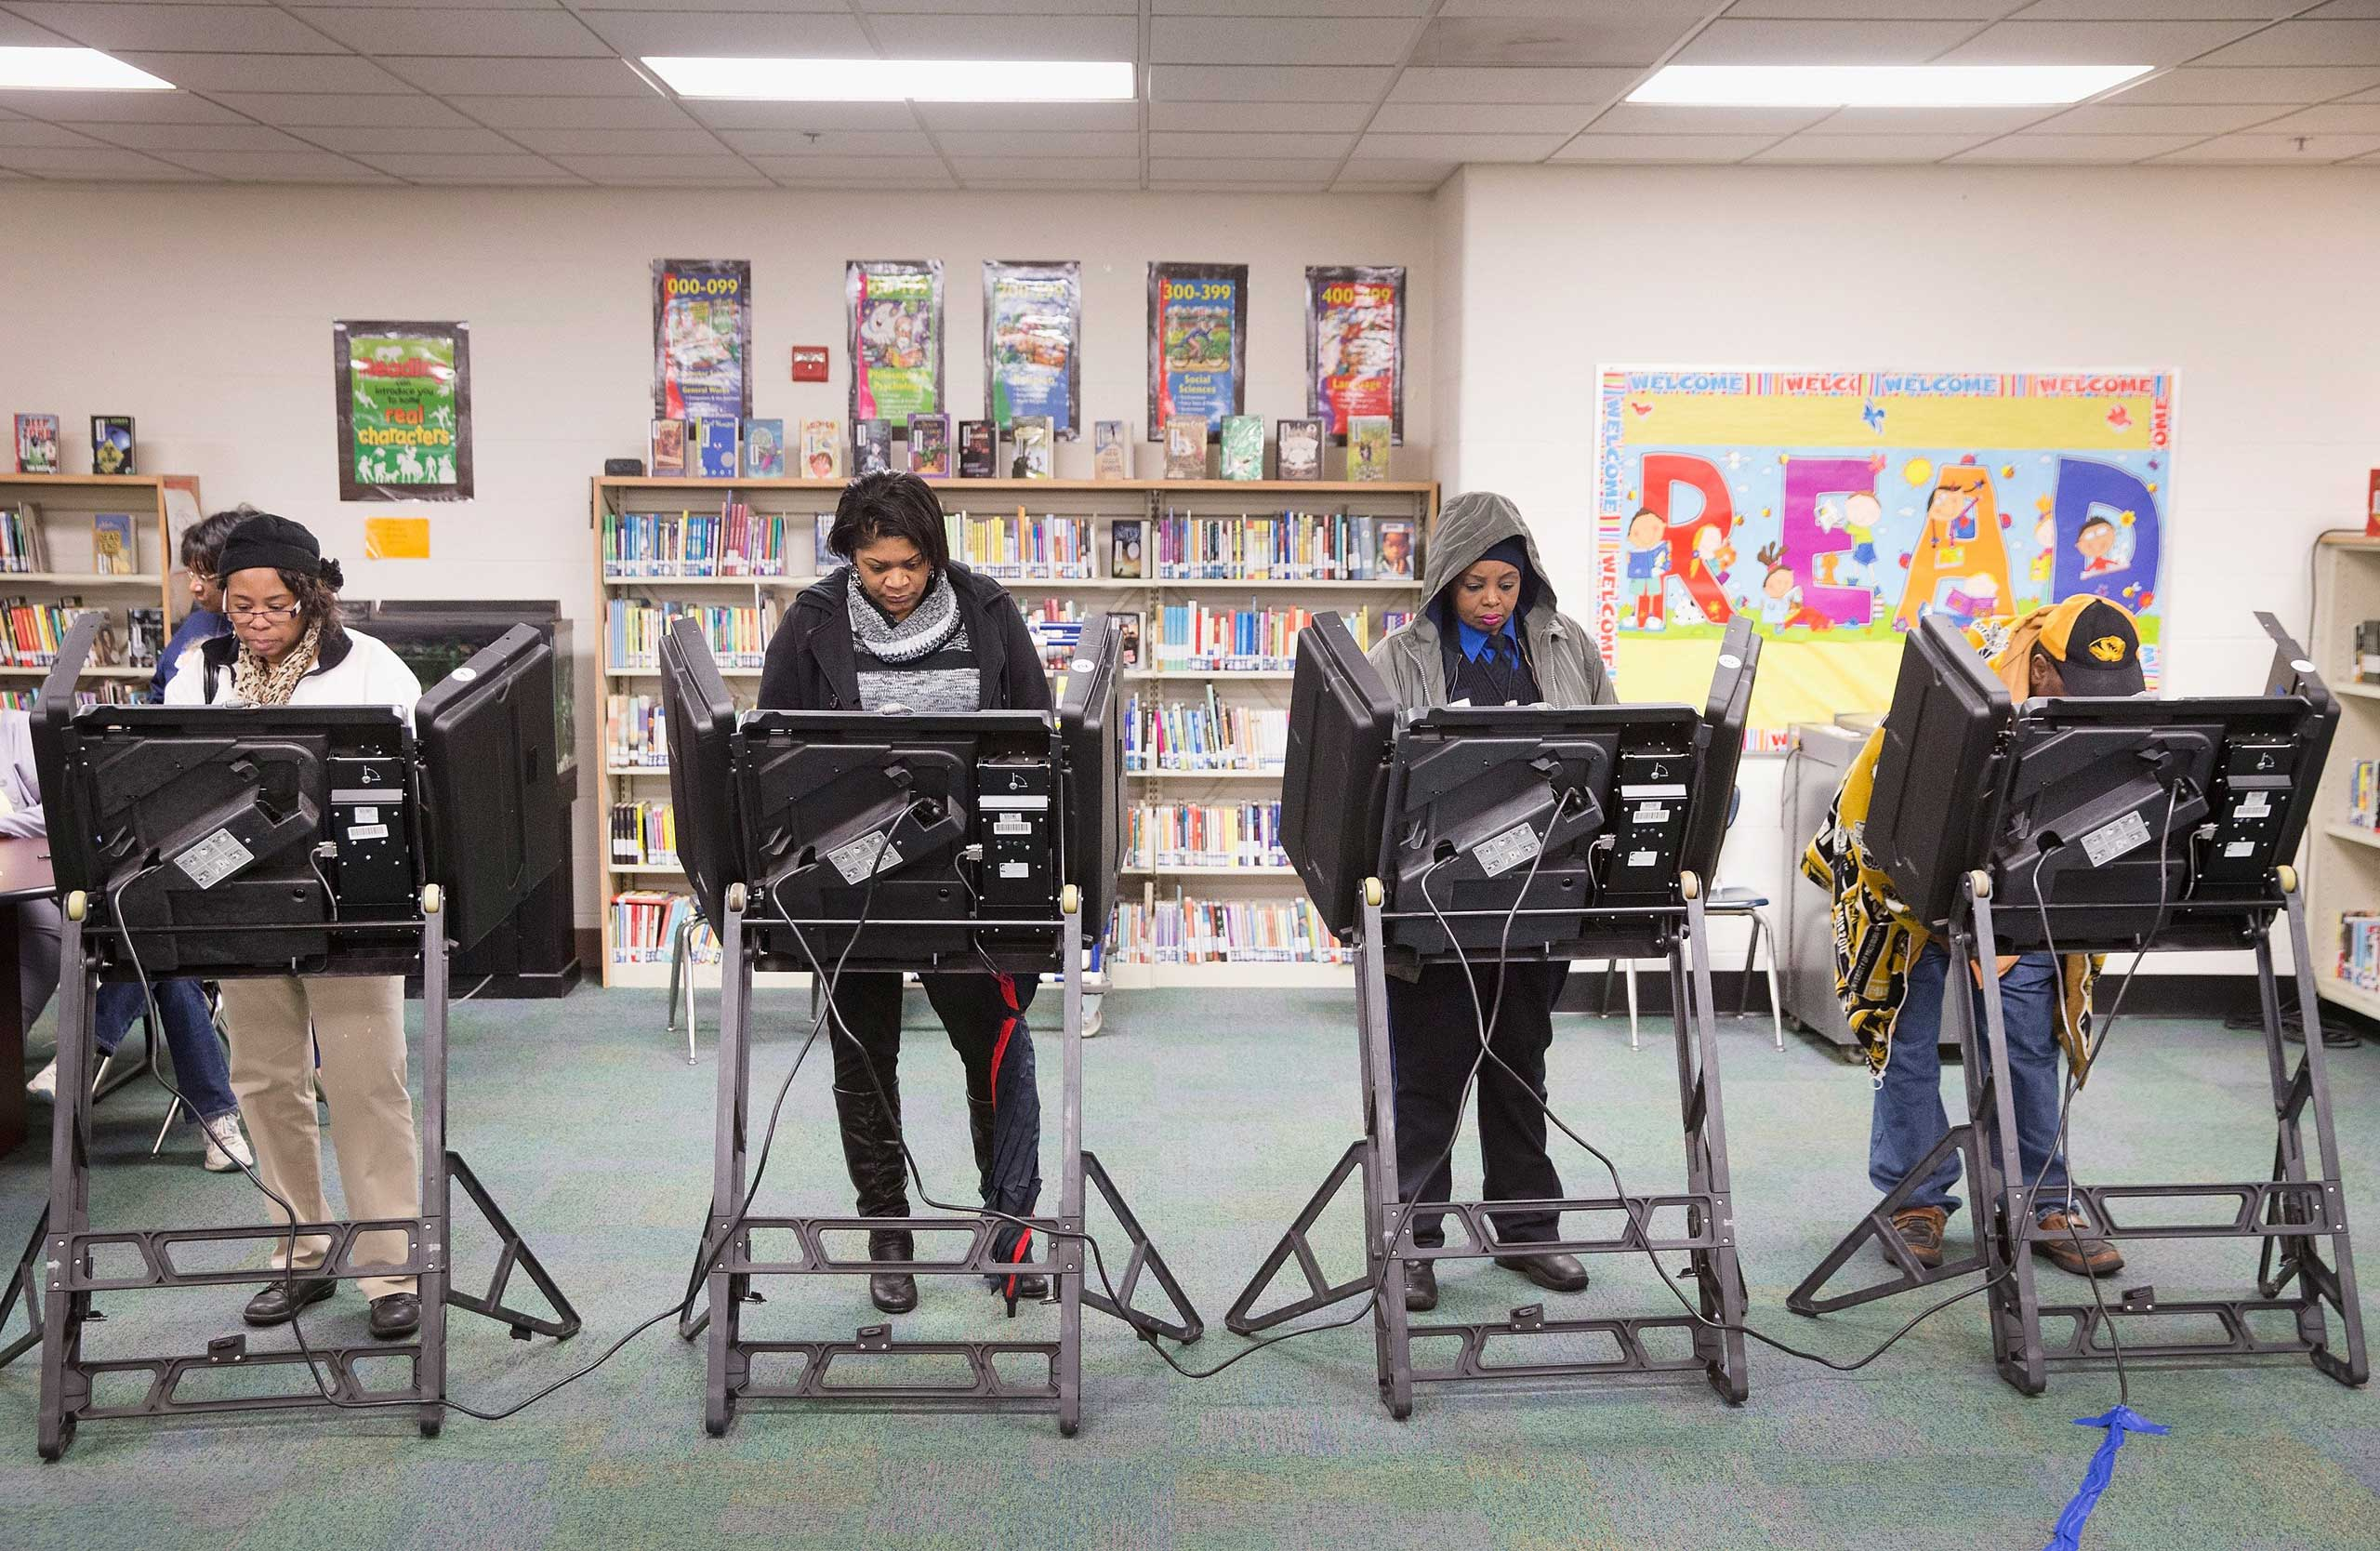 Residents cast their votes at a polling place in Ferguson, Mo. on Nov. 4, 2014.